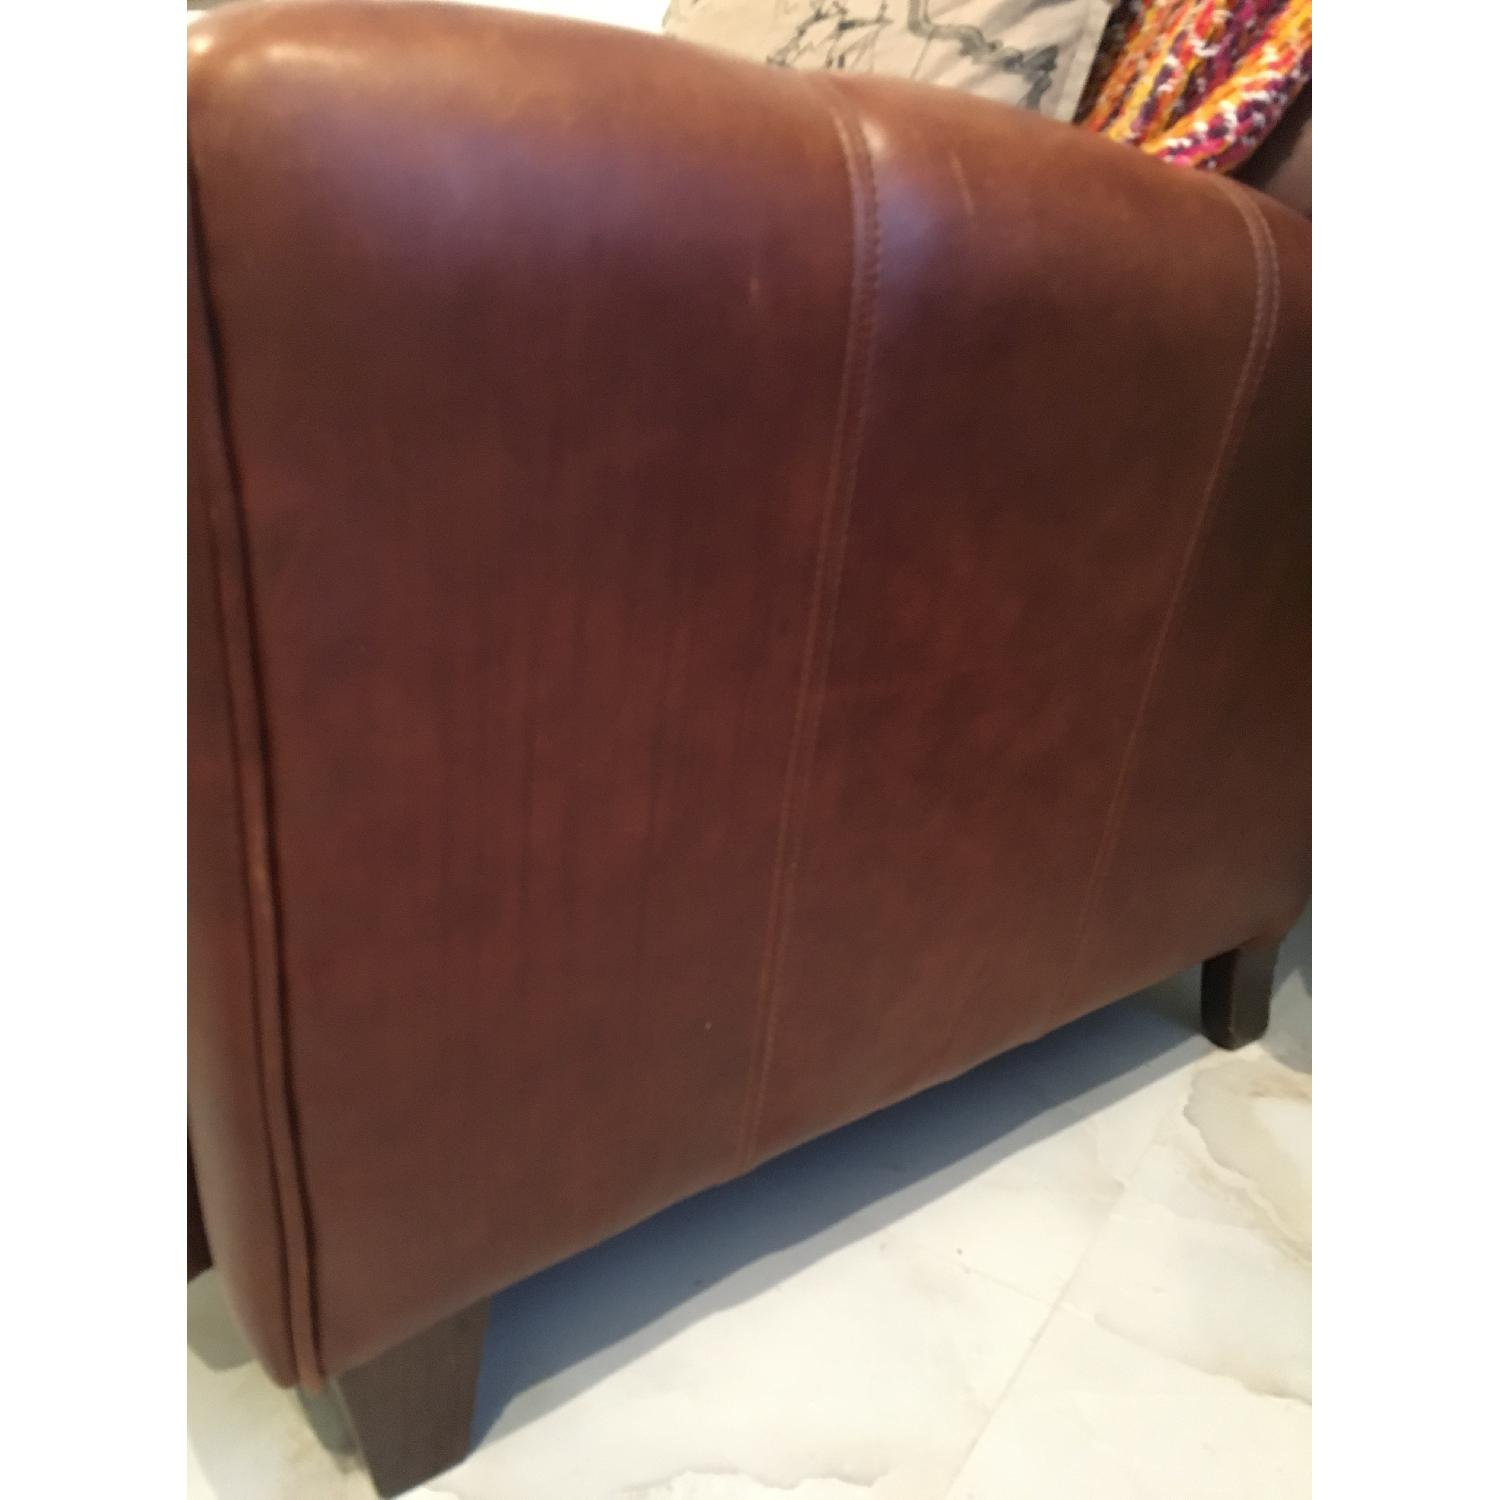 Brown Barcalounger Leather Arm Chair - image-8